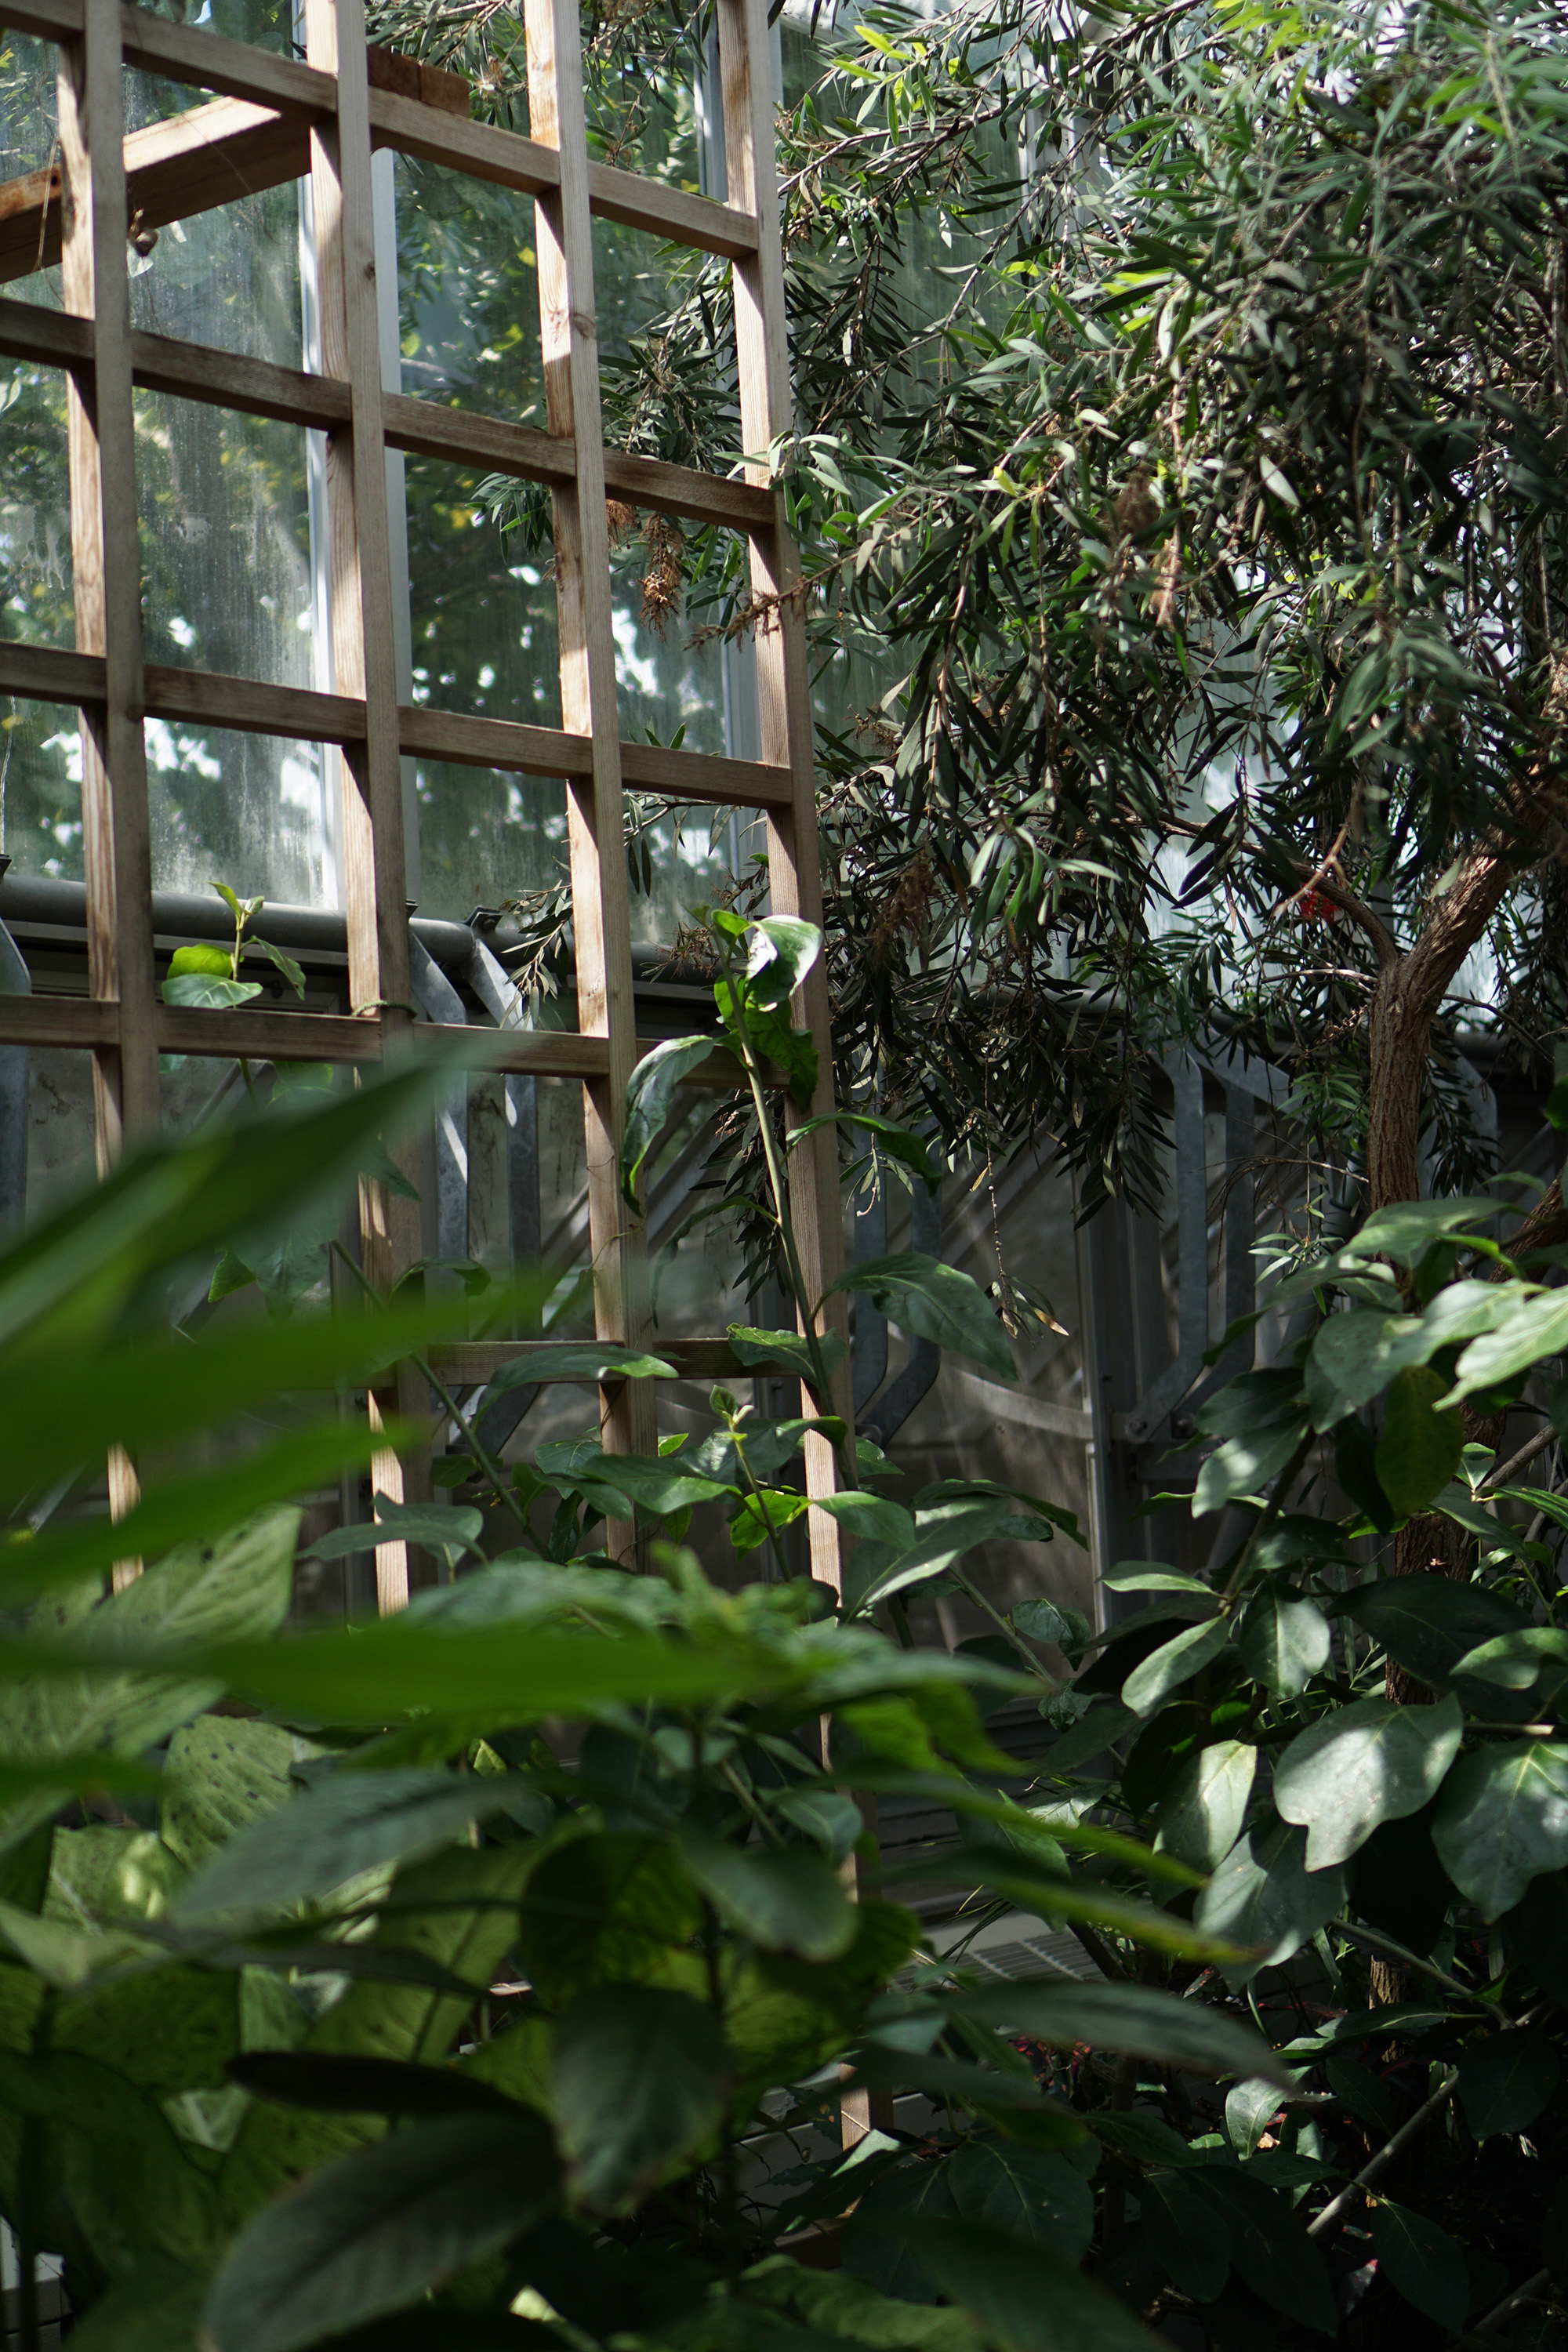 Tropical house, Chicago Botanic Garden / Darker than Green